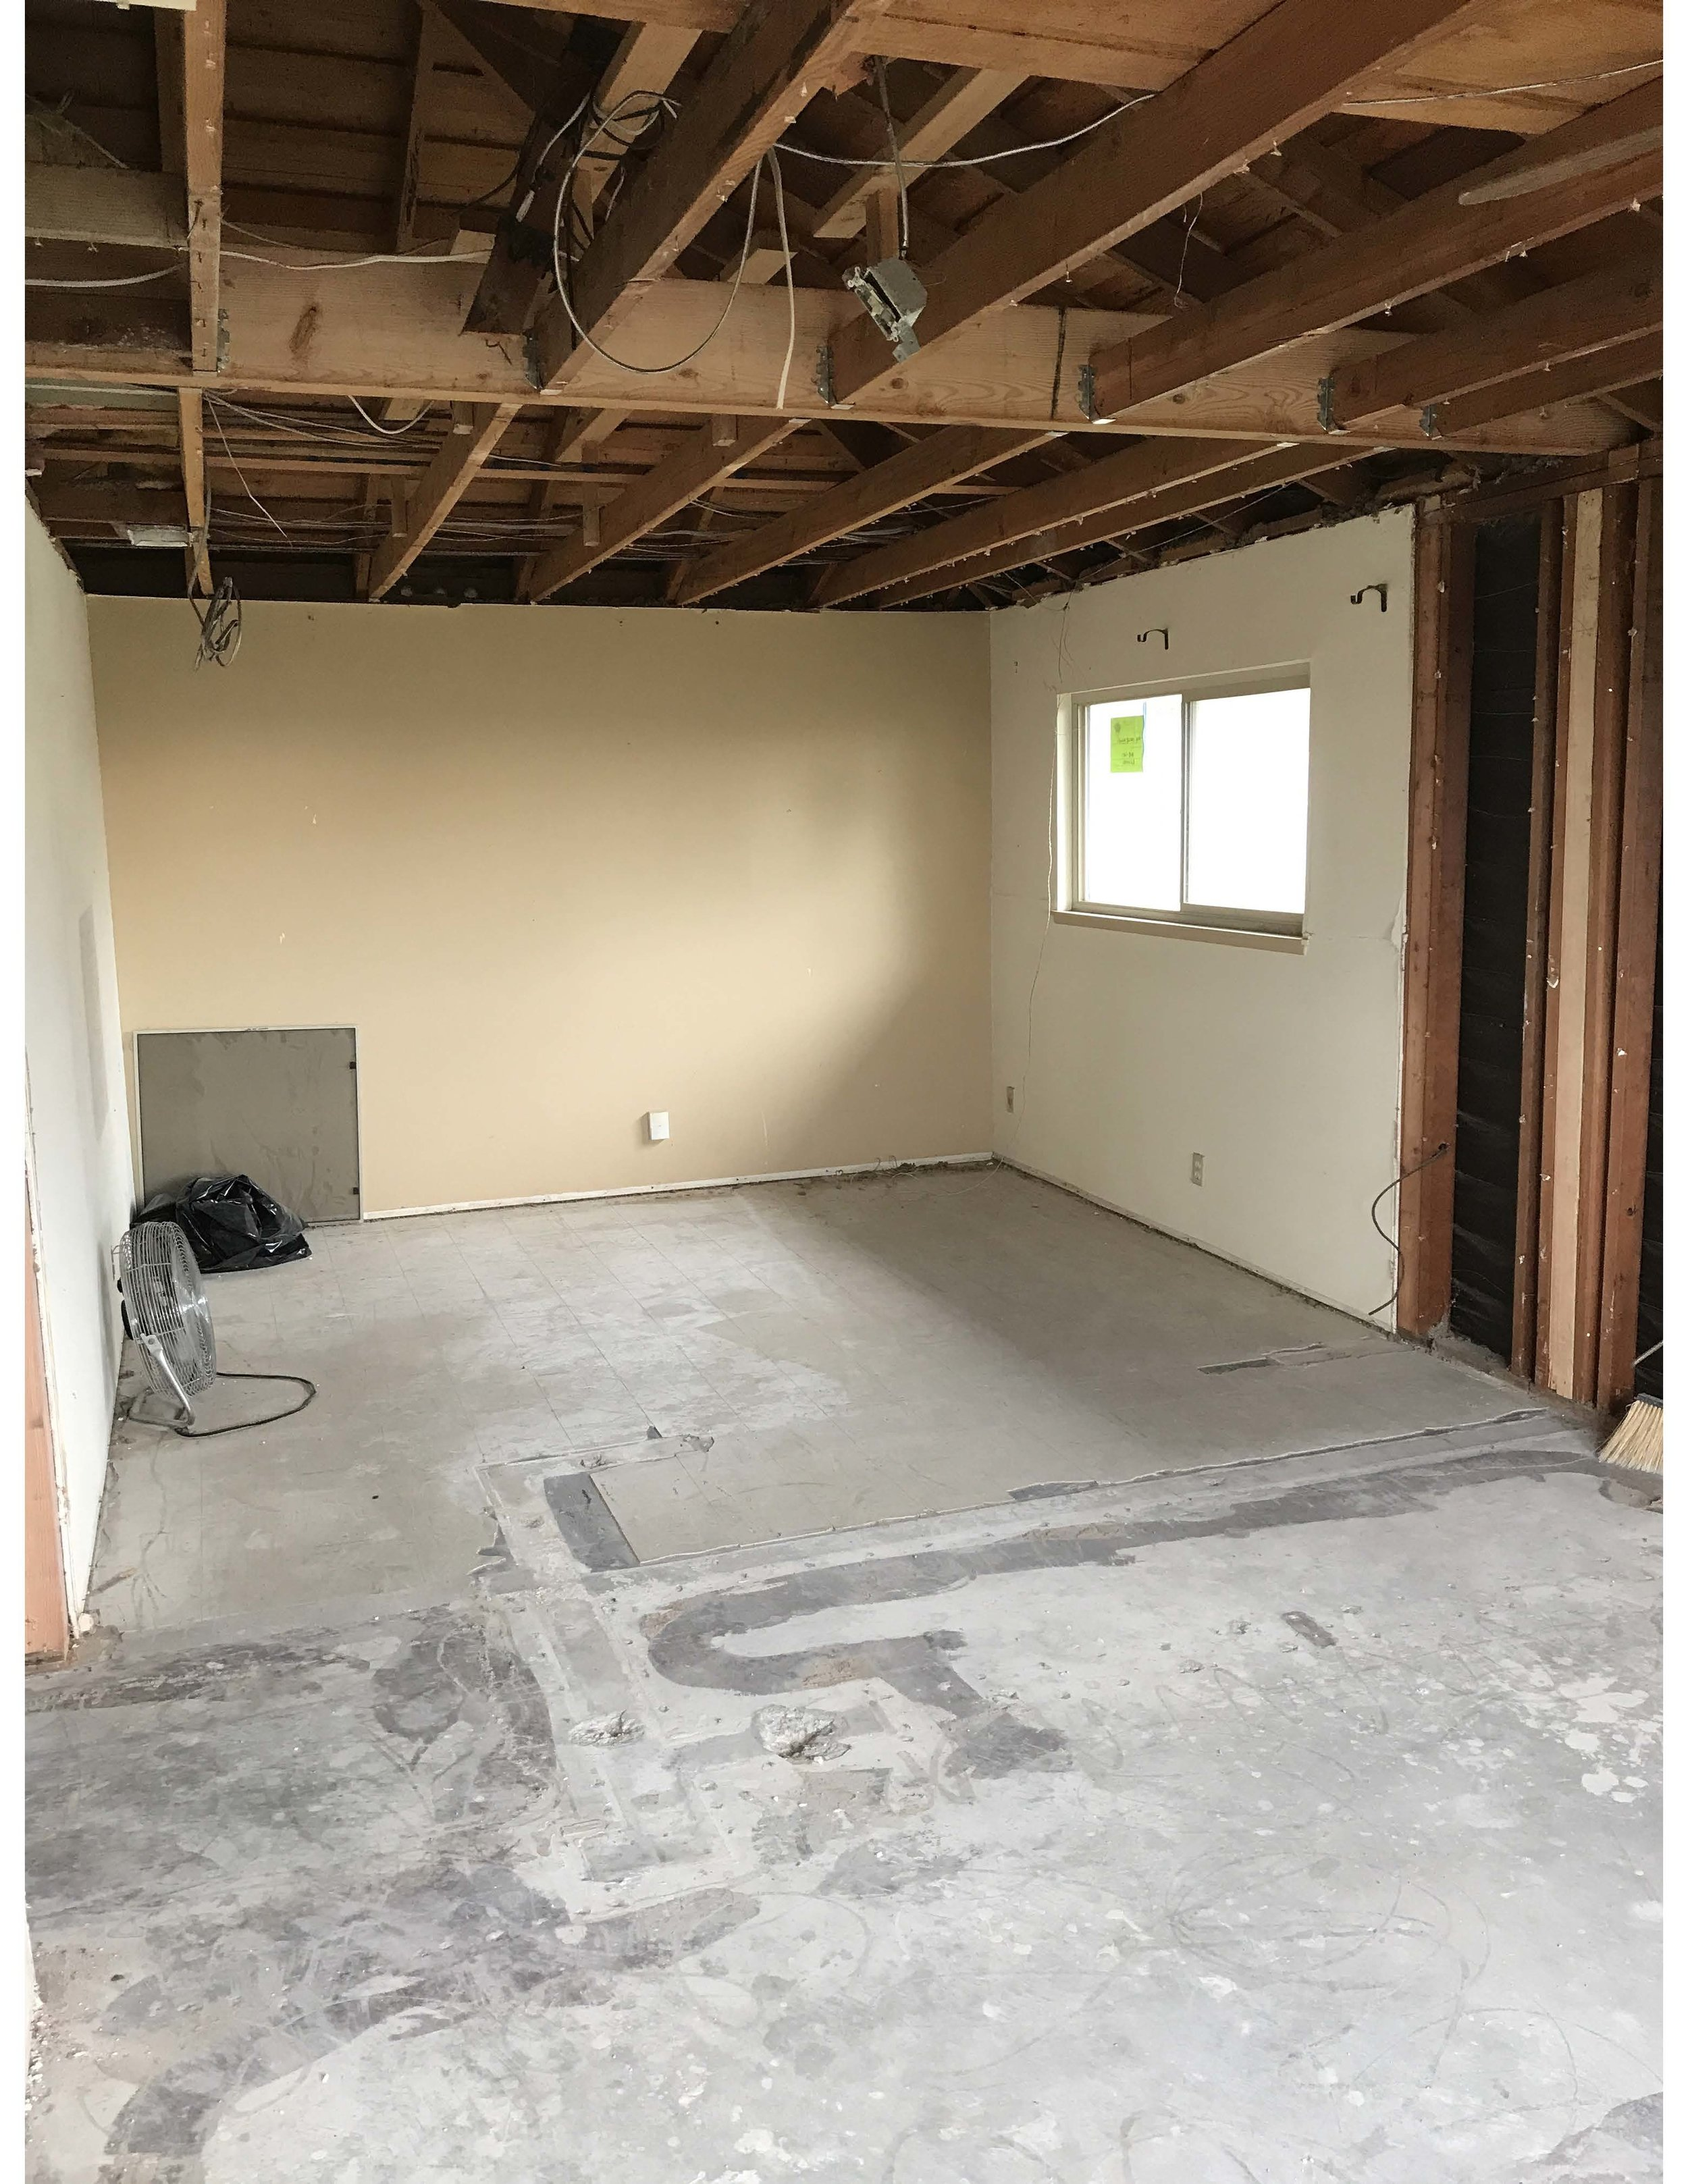 NOW   Master bedroom is now opened up with all new framing. We will be creating a large walk-in closet that will take up a significant portion of what used to be the second bedroom.